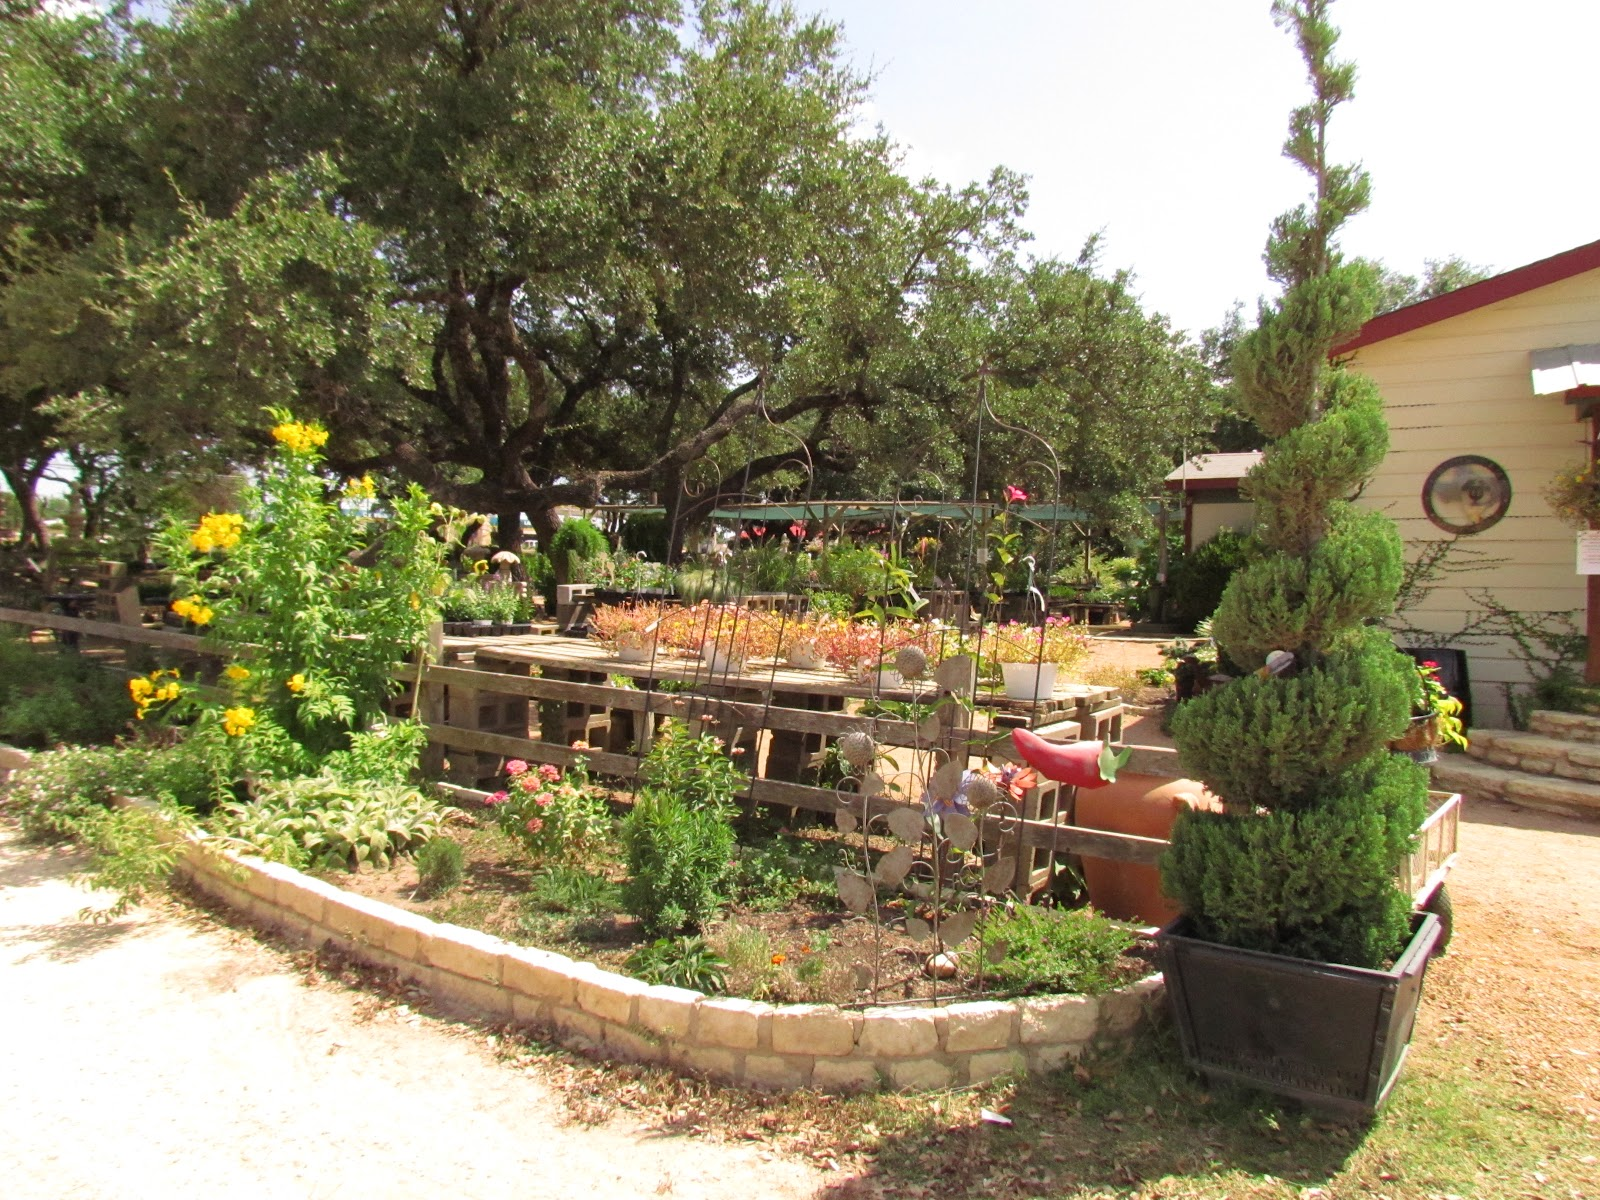 bwisegardening: Austin City Limits and Beyond!